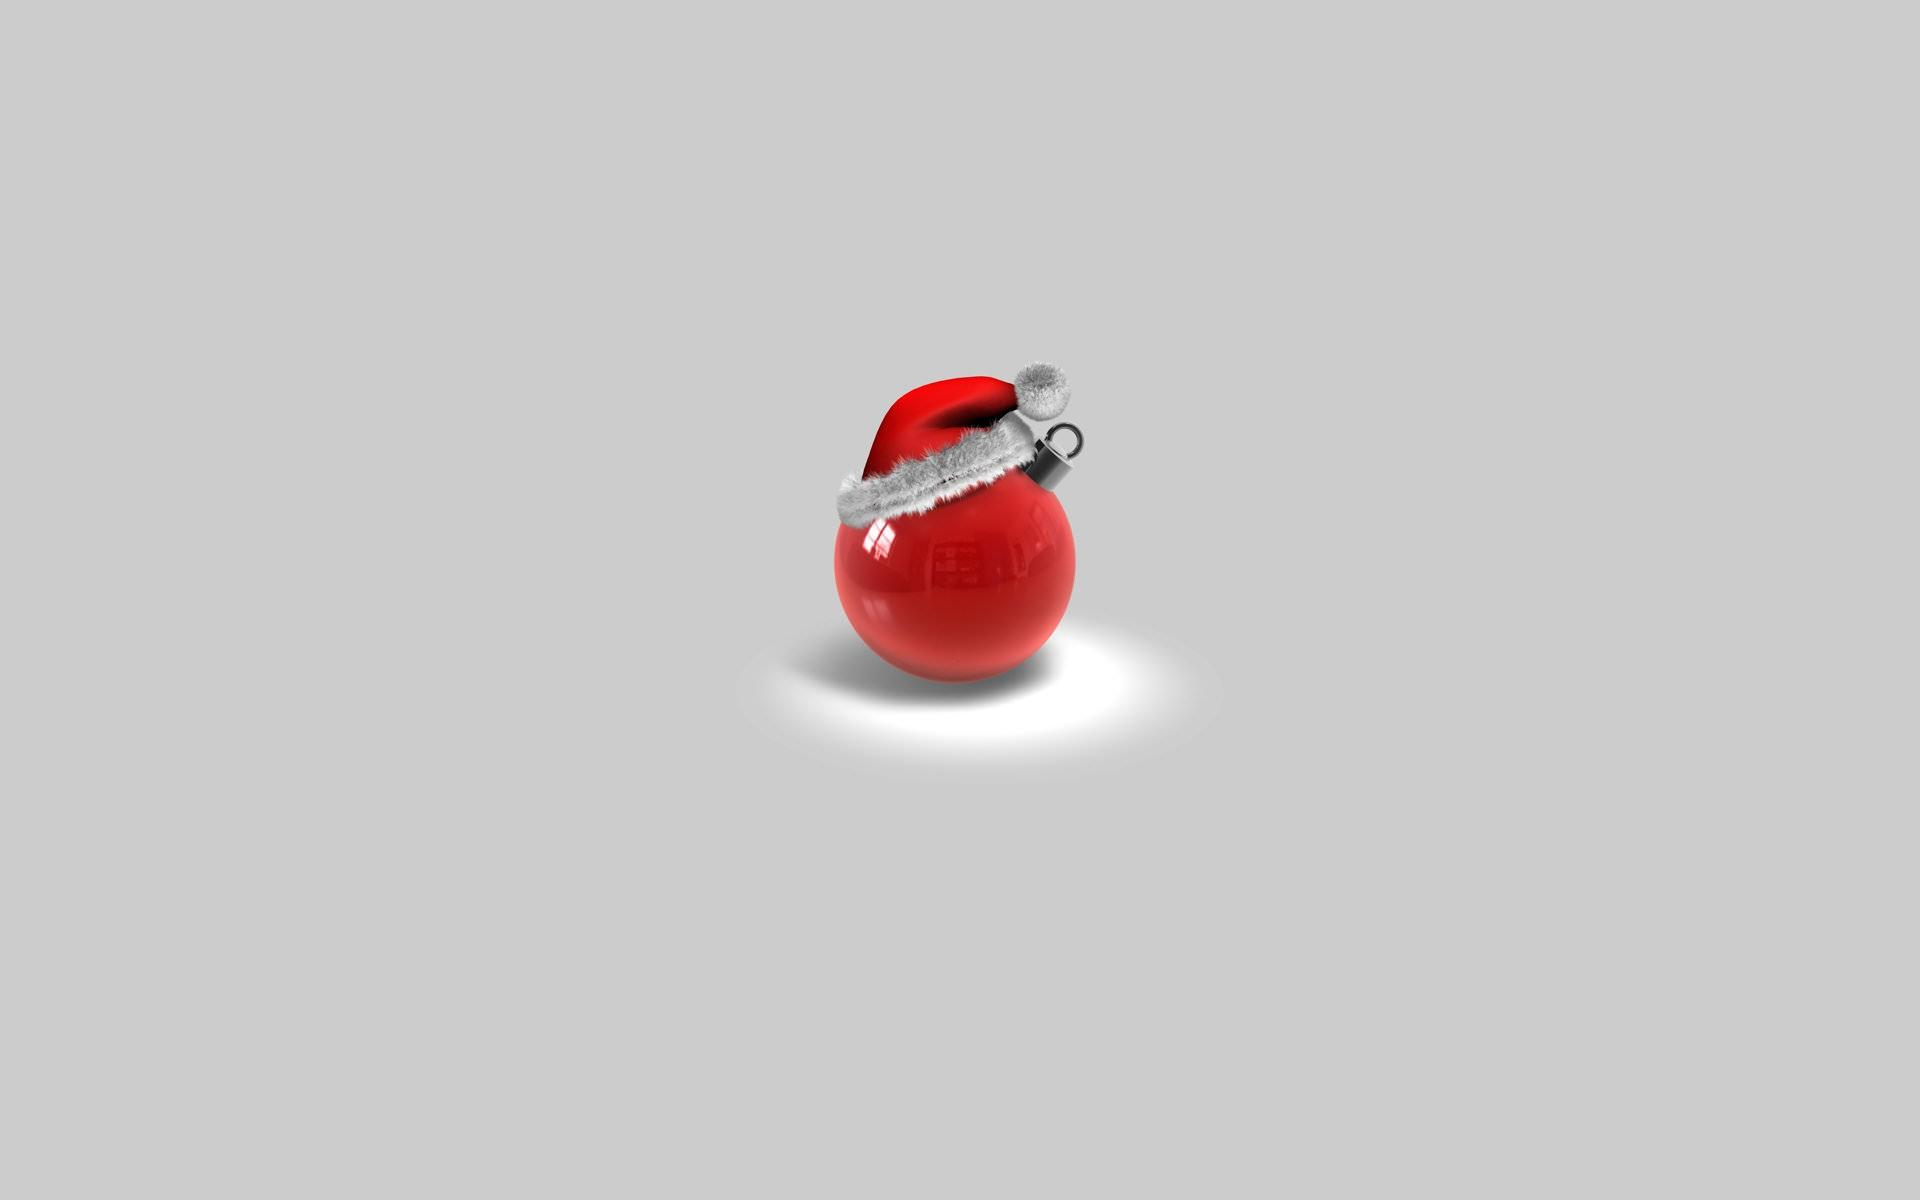 Christmas Ornaments/Decorations wallpapers 1920x1200 desktop backgrounds